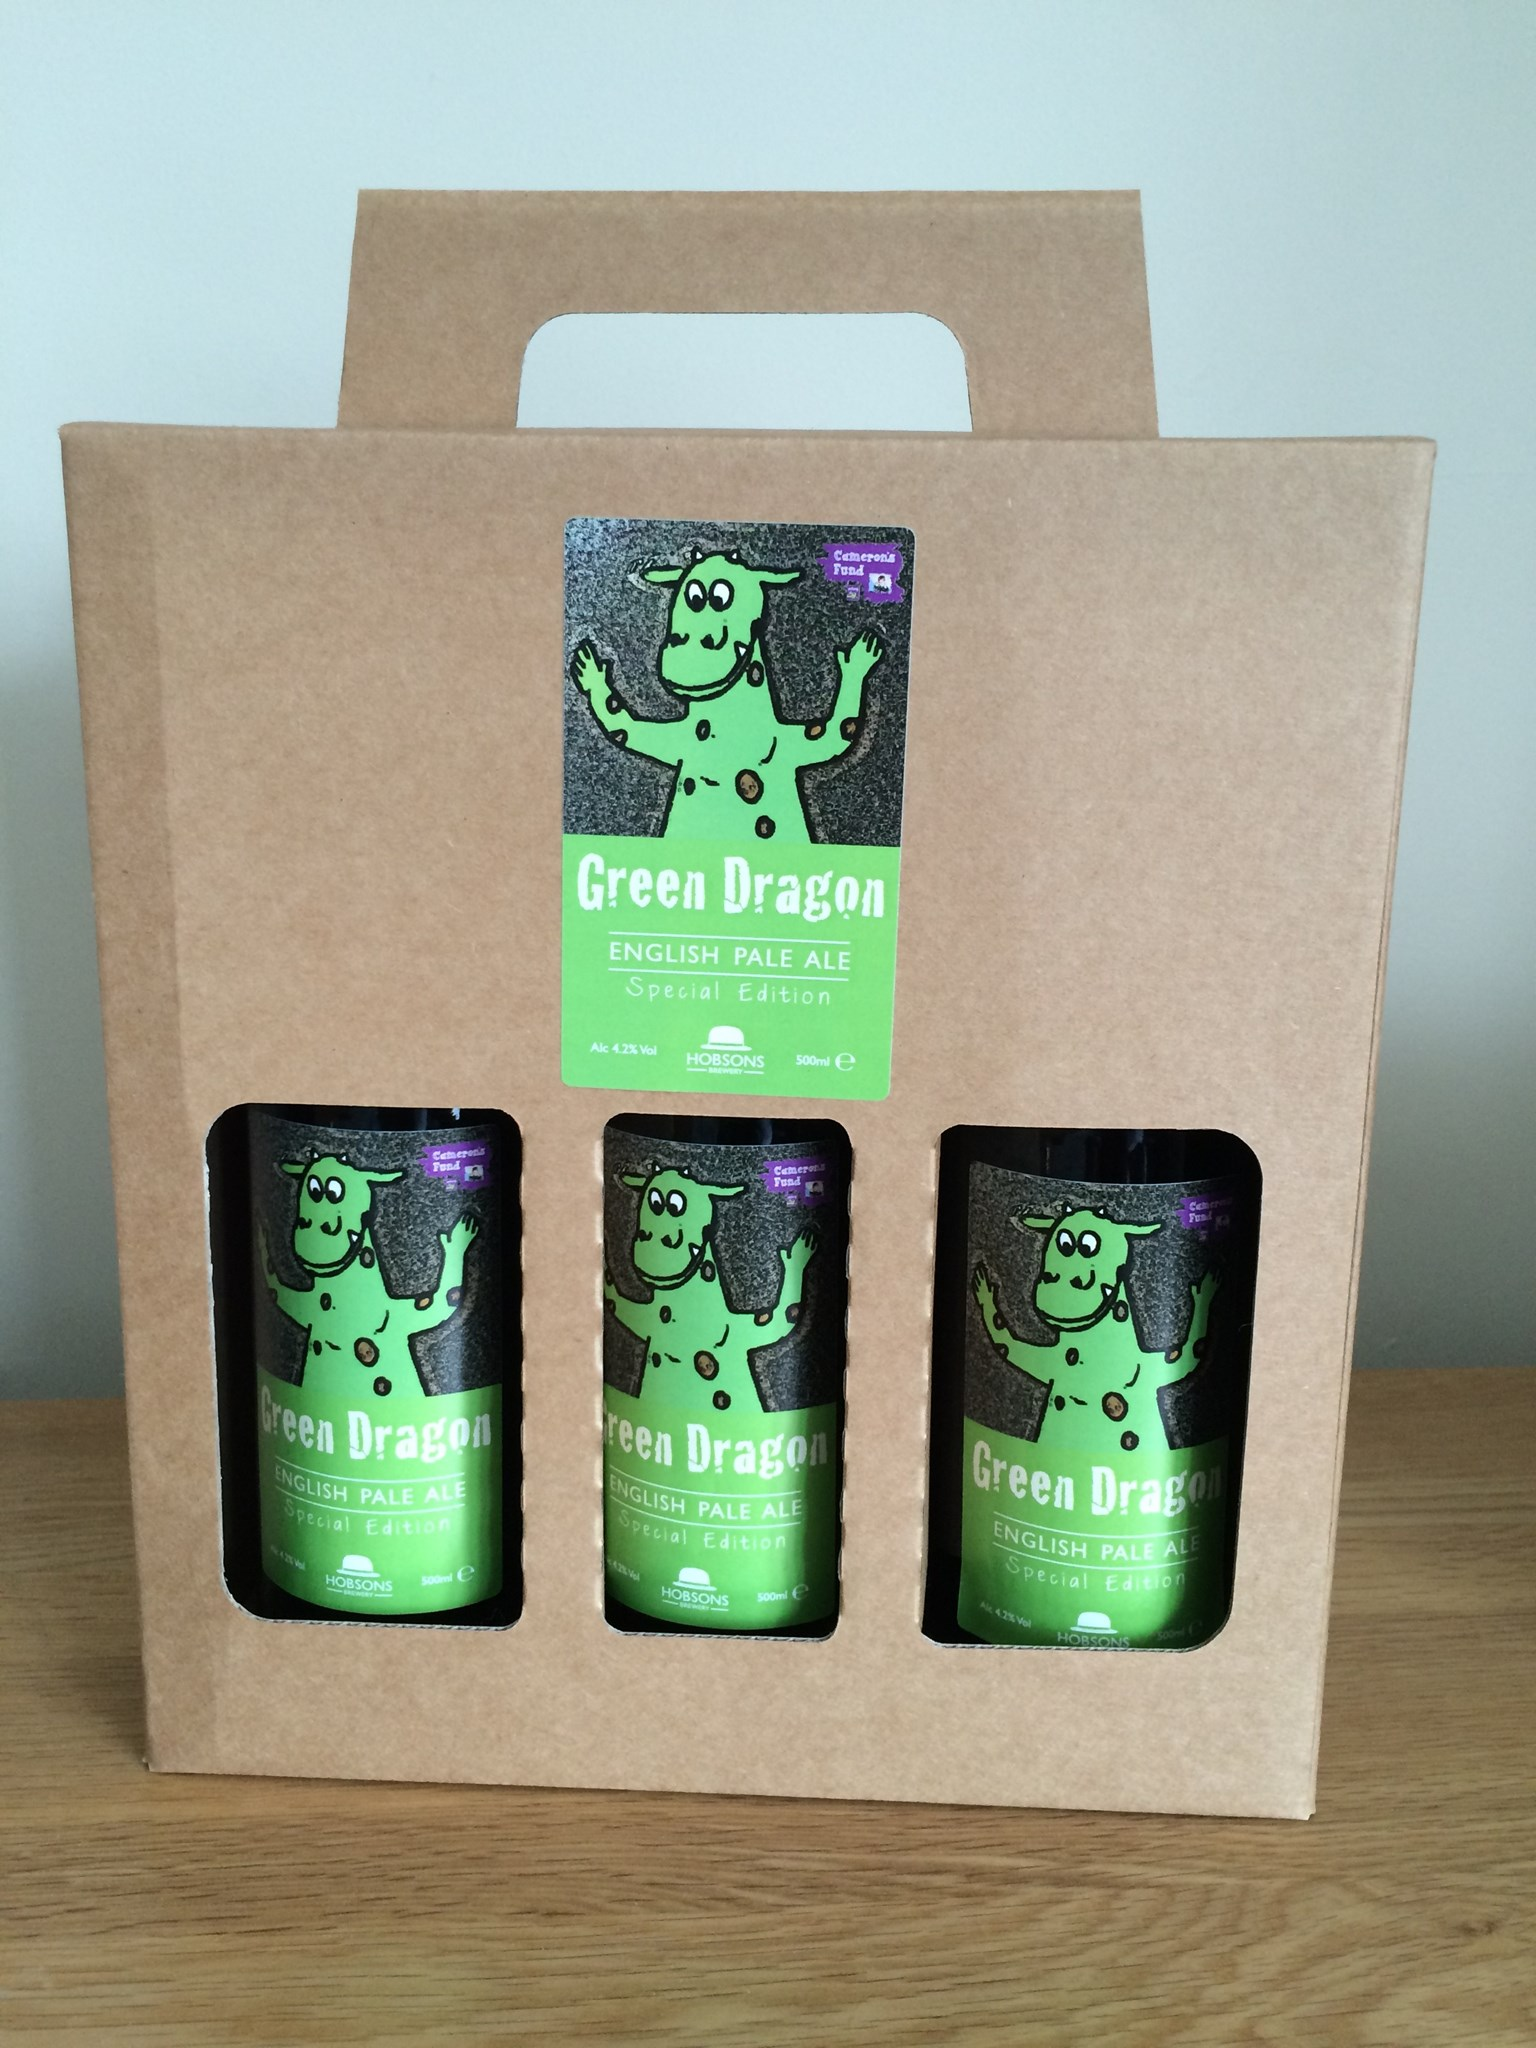 Green Dragon pale ale, by Hobson's Brewery to raise money in memory of Cameron